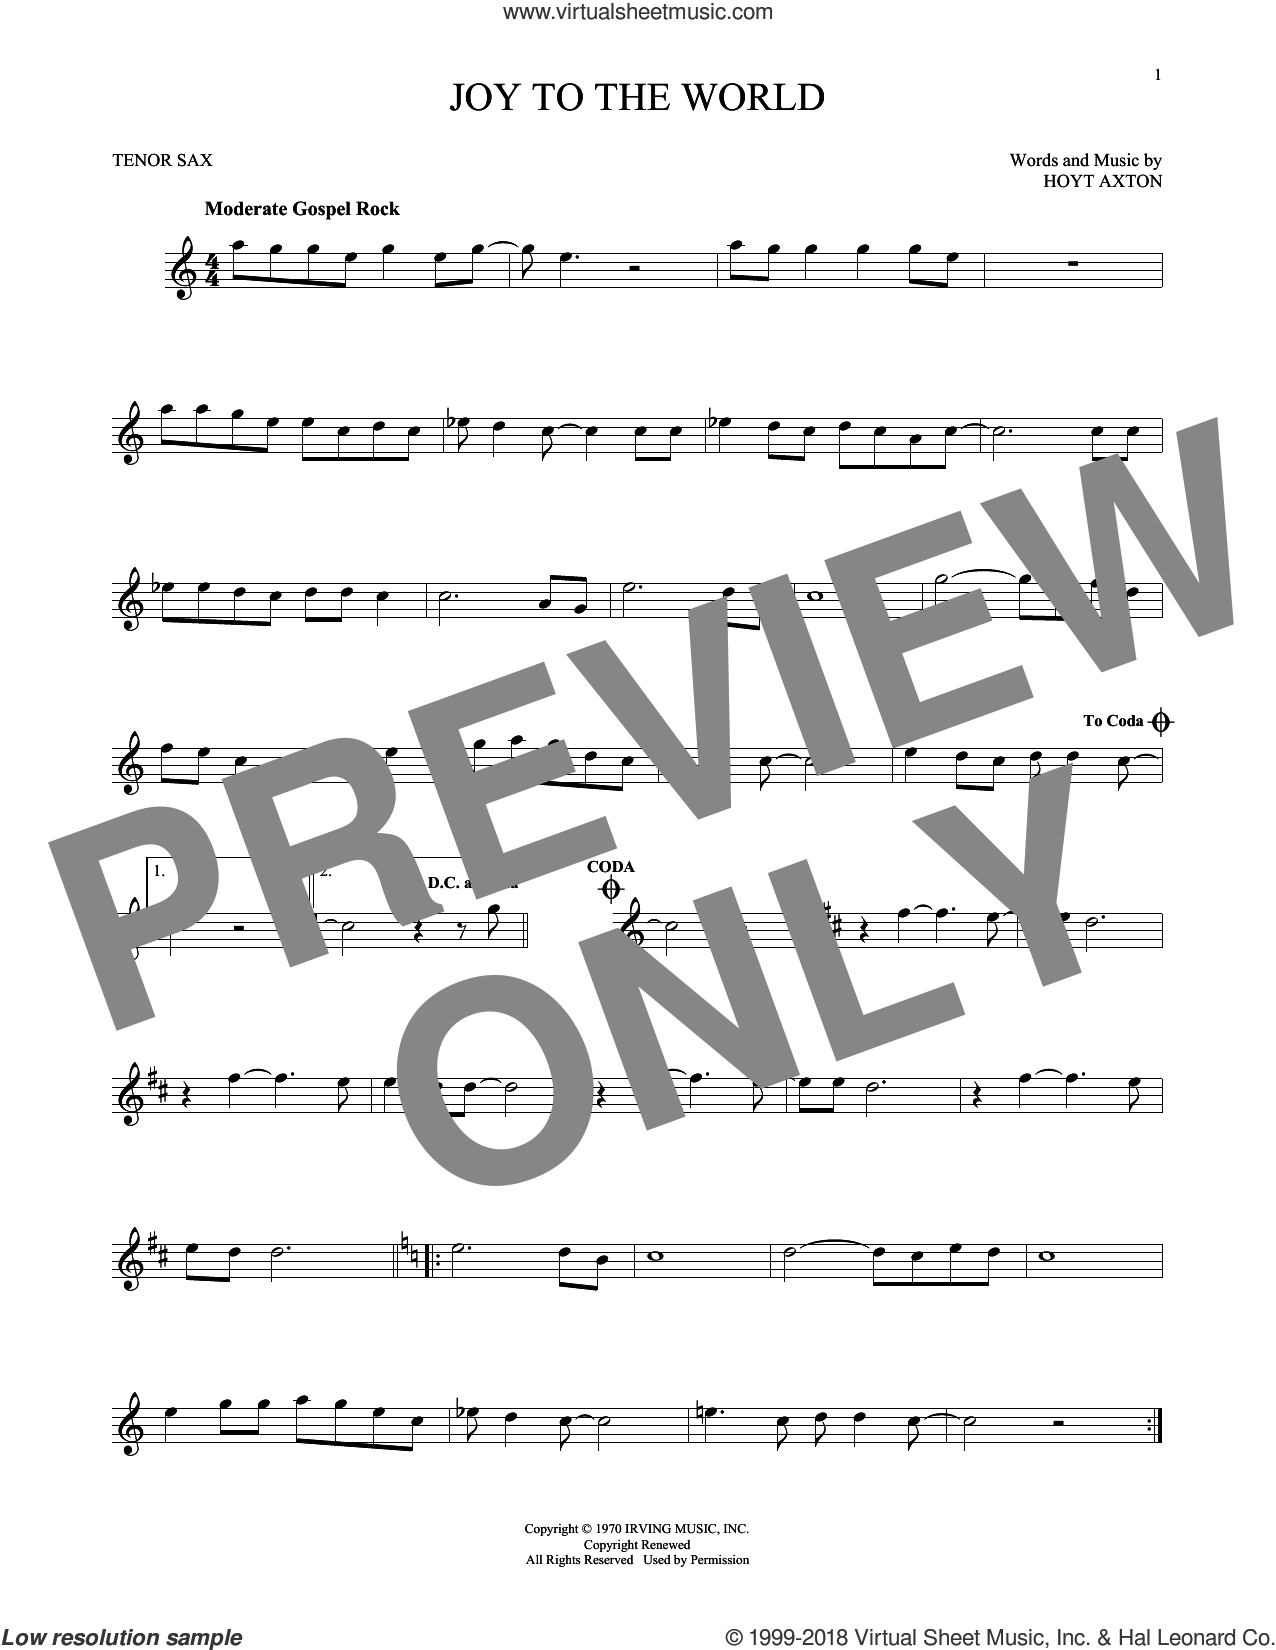 Joy To The World sheet music for tenor saxophone solo by Three Dog Night and Hoyt Axton, intermediate skill level